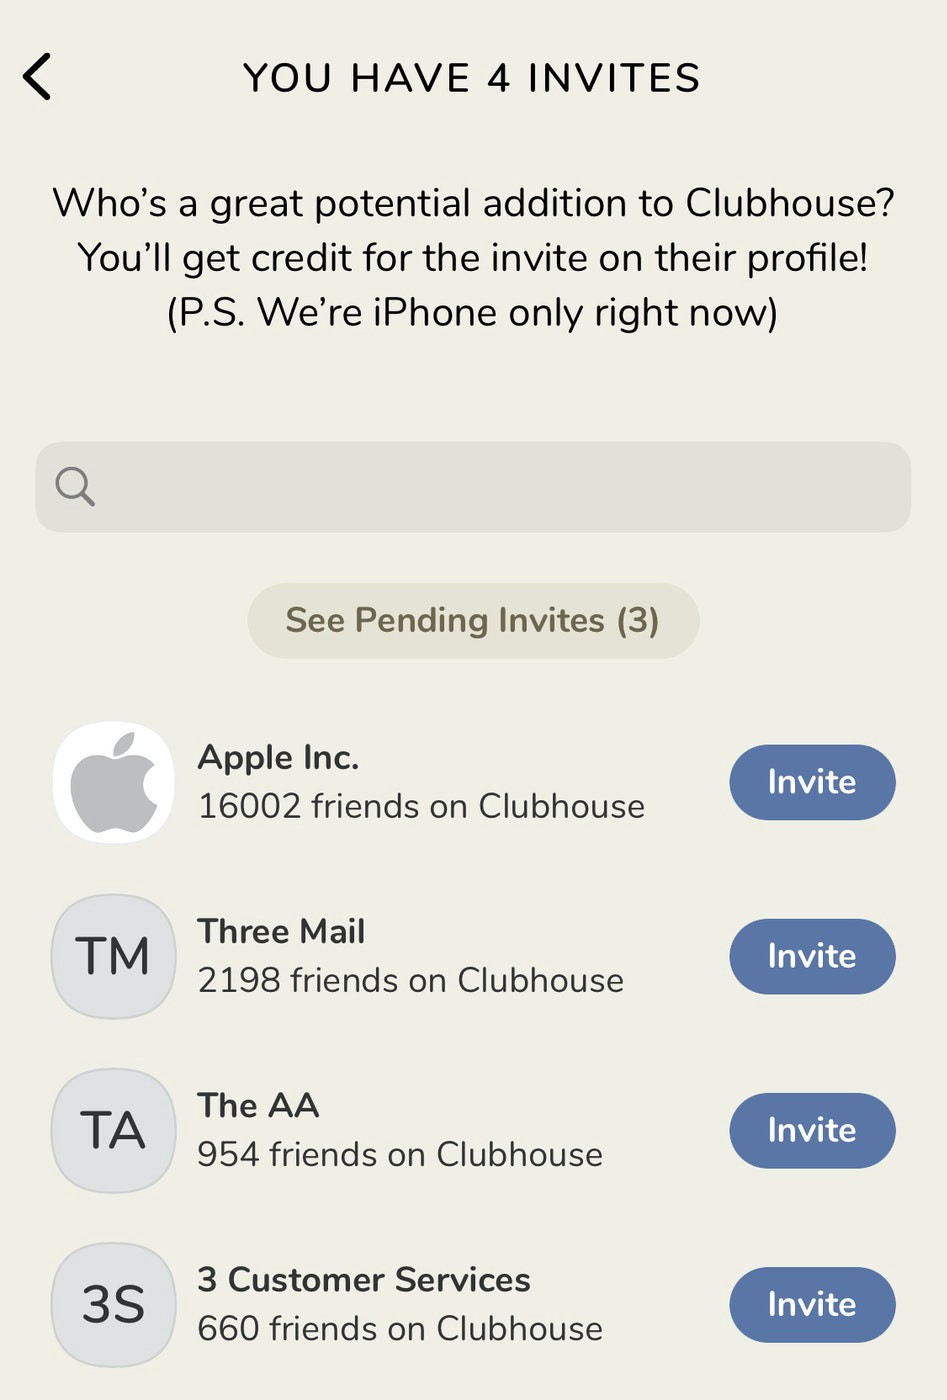 medium.com - Carlos Saba - A Happy Startup Guide to Clubhouse: For beginners asking themselves WTF is this?